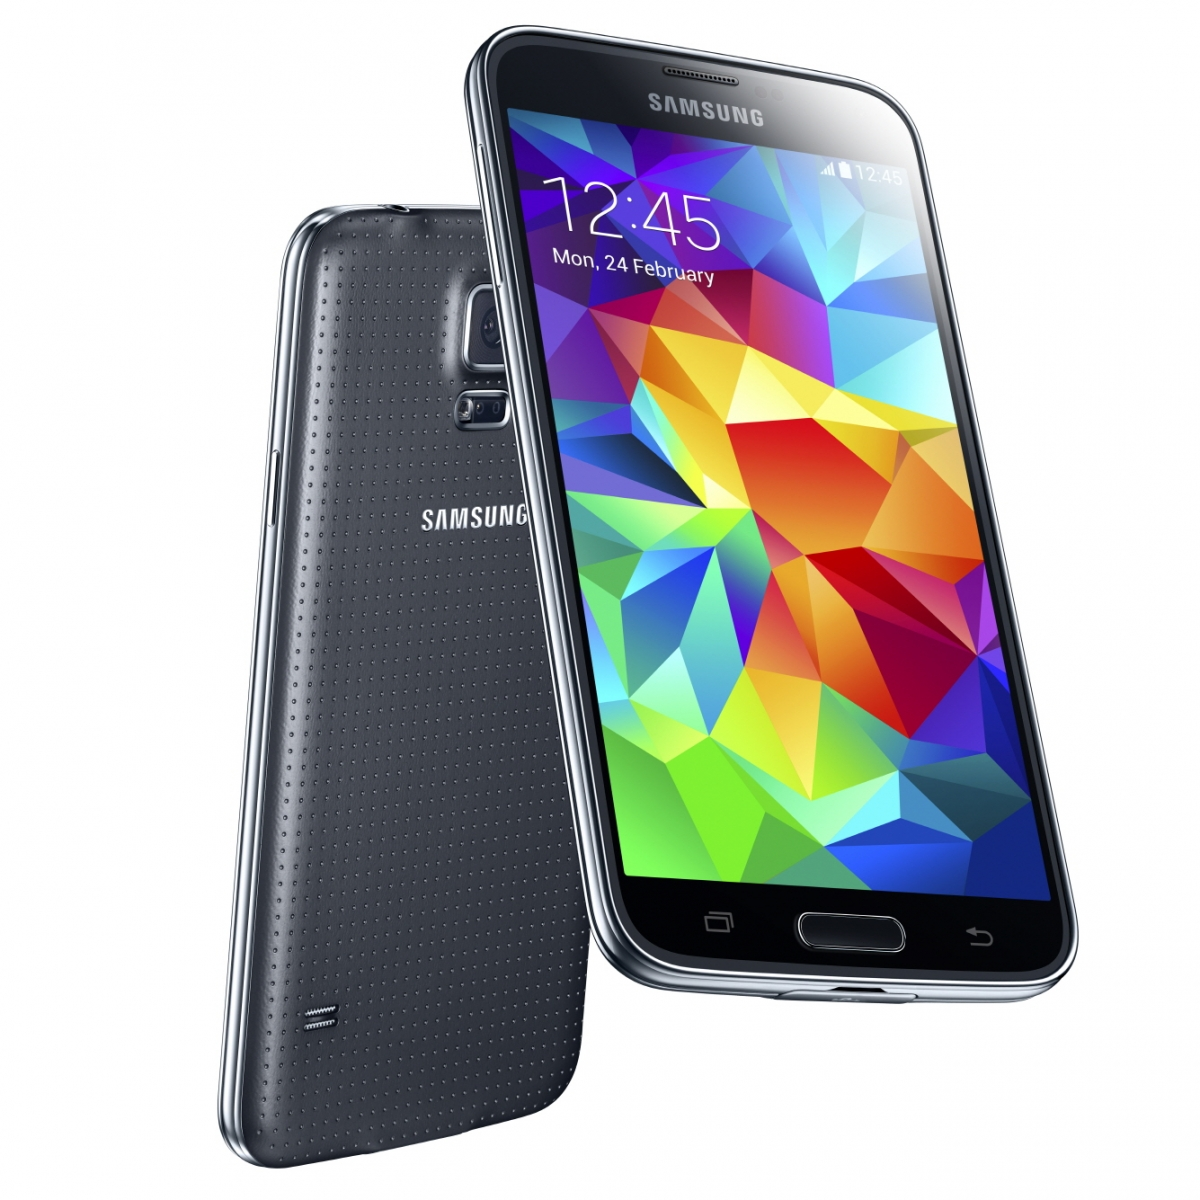 Galaxy S5 LTE Gets G900FXXU1ANCE Android 4.4.2 European Stock Firmware